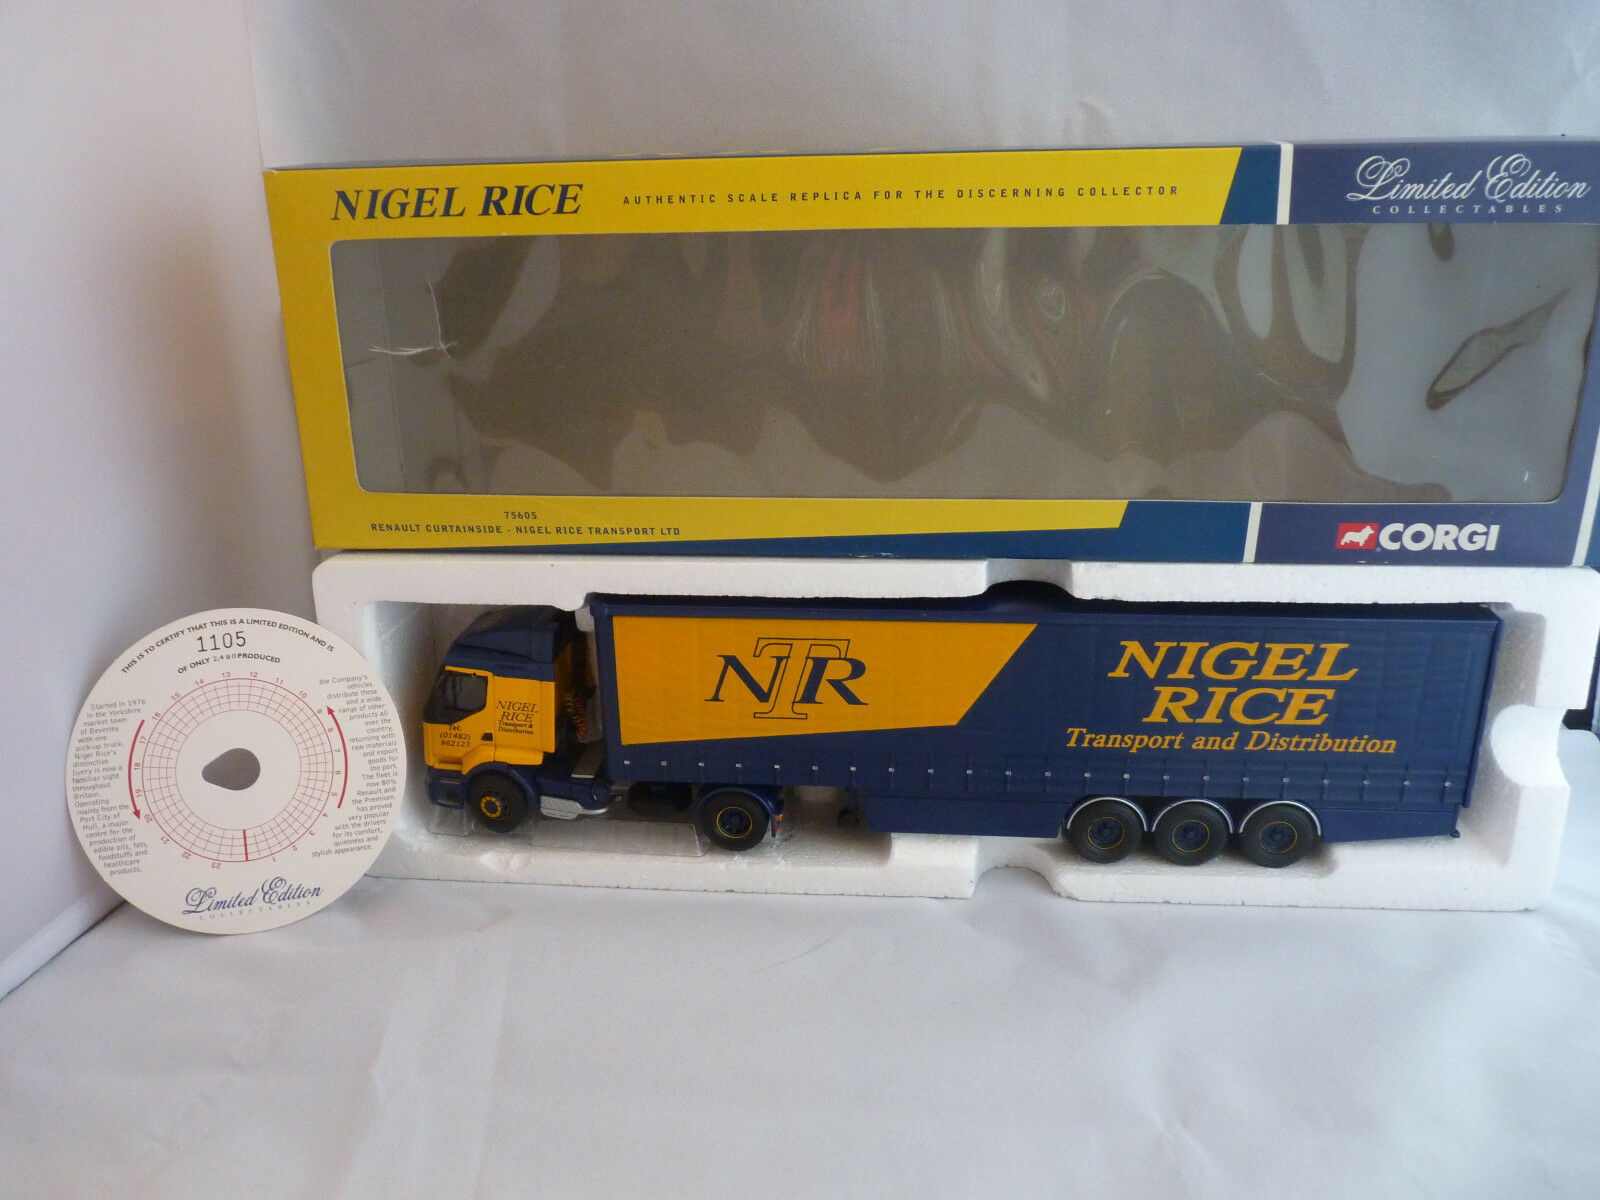 Corgi 75605 'Nigel Rice' Limited Edition Renault curtainside